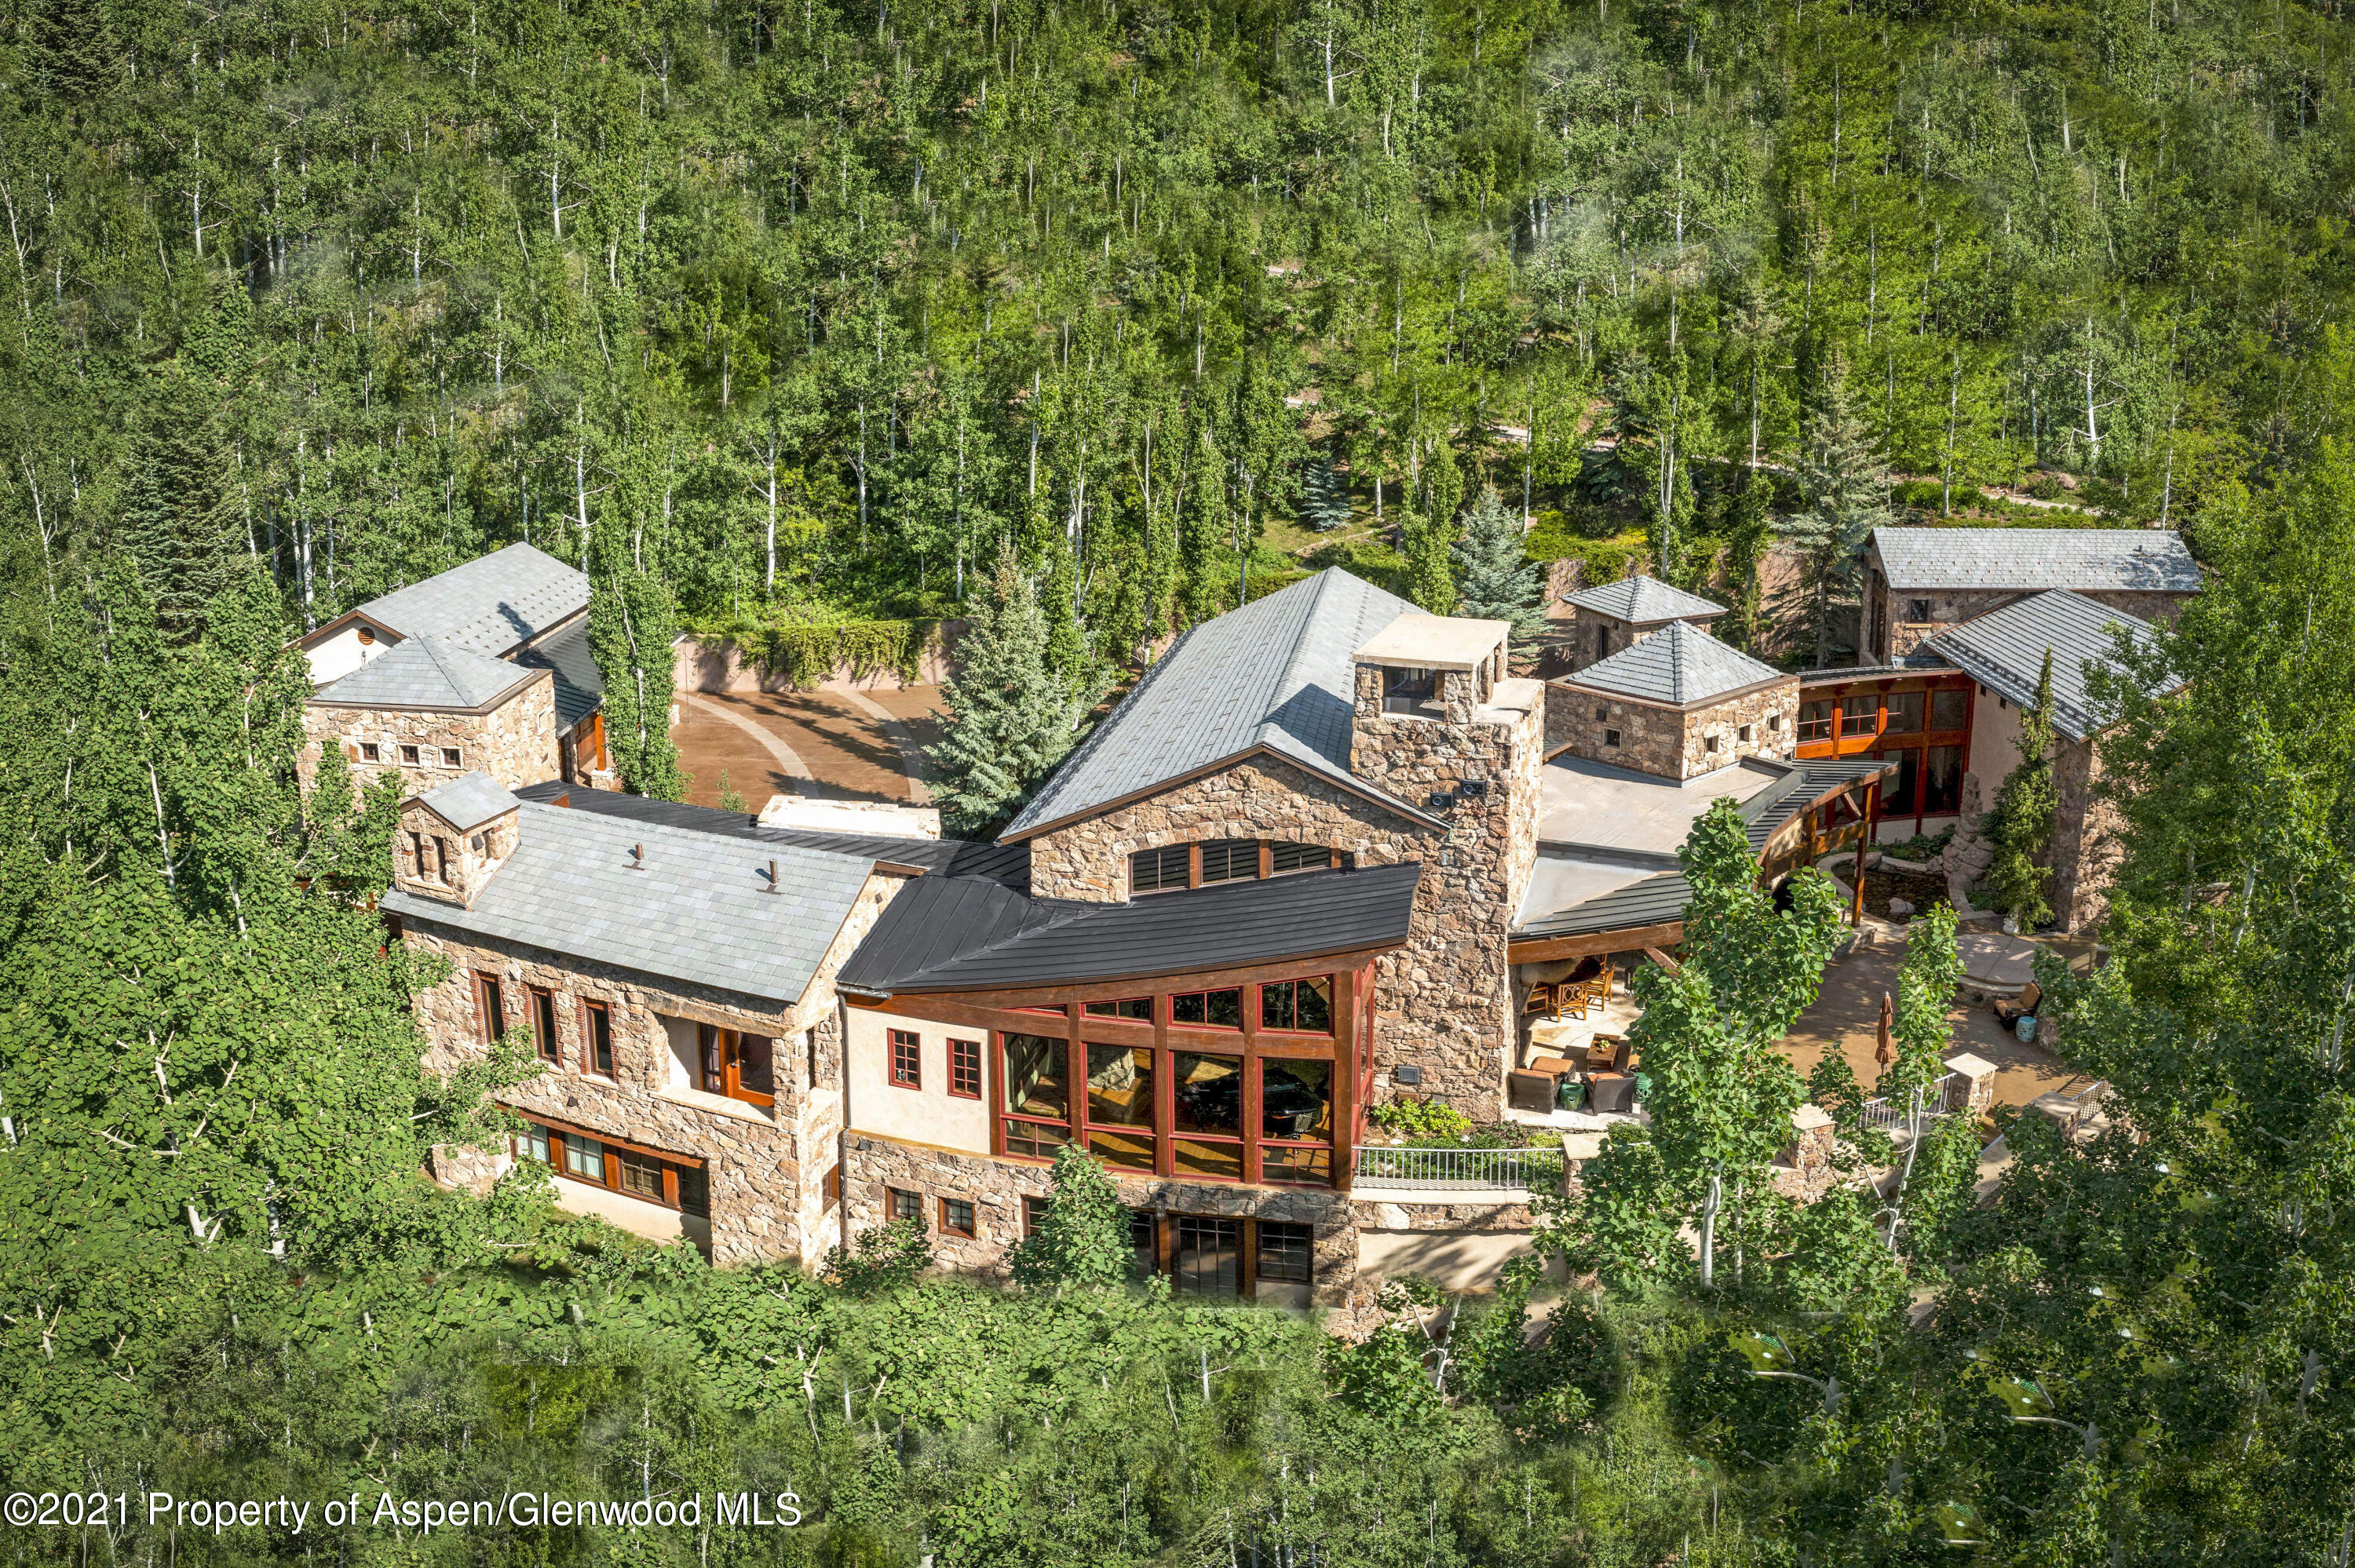 Located at the terminus of secluded Falcon Road in Five Trees, this ski in/ ski out, 5 bedroom, 9 bath estate embodies architectural artistry, Colorado majesty and ultimate privacy. This 8,983 SF home has interiors of thoughtful finishes, including dramatic stone fireplaces and archways, walls of windows framing mountain views, ash wood floors and soaring ceilings with wooden beam trusses, the home captures a Tuscan aesthetic with materials that are indigenous to Colorado, creating a magnificent synergy.A stand-out feature of the home on 1.4 acres is the stunning elevated outdoor patio complete with a cascading waterfall, oversized stone hearth, spa and northwestern views looking up the Roaring Fork Valley and west towards Baldy Peak and the Willow Creek Valley. Located off the great room and kitchen, the beautiful space welcomes large scale al fresco entertaining or intimate dinners and offers both sunny and shaded areas.  Walls of glass flood the interiors with natural light and vistas of rugged peaks. The open floor plan segues seamlessly between the formal living room with its dramatic stone fireplace, the formal dining room that easily seats 12, and the chef's kitchen. The kitchen features top-of-the-line appliances plus an oversized center island with stools for meals on the go as well as an alcove for informal family gatherings.  The 5 en suite bedrooms serve as a haven for any family member or guest. The main level primary suite is an oasis of calm with mountain views, fireplace and a bathroom with a soaking tub and oversized shower. The other 4 bedrooms are spread throughout the home on various levels, lower two bedrooms have elevator service.  The home is further appointed with a 1,000-plus-bottle stone wine cellar and tasting table, a glass alcove that currently houses a grand piano, a wet bar, a club room and an office with a private entrance. The lower walk-out level also features a bonus room that could be used for a kids playroom or workout room. The 